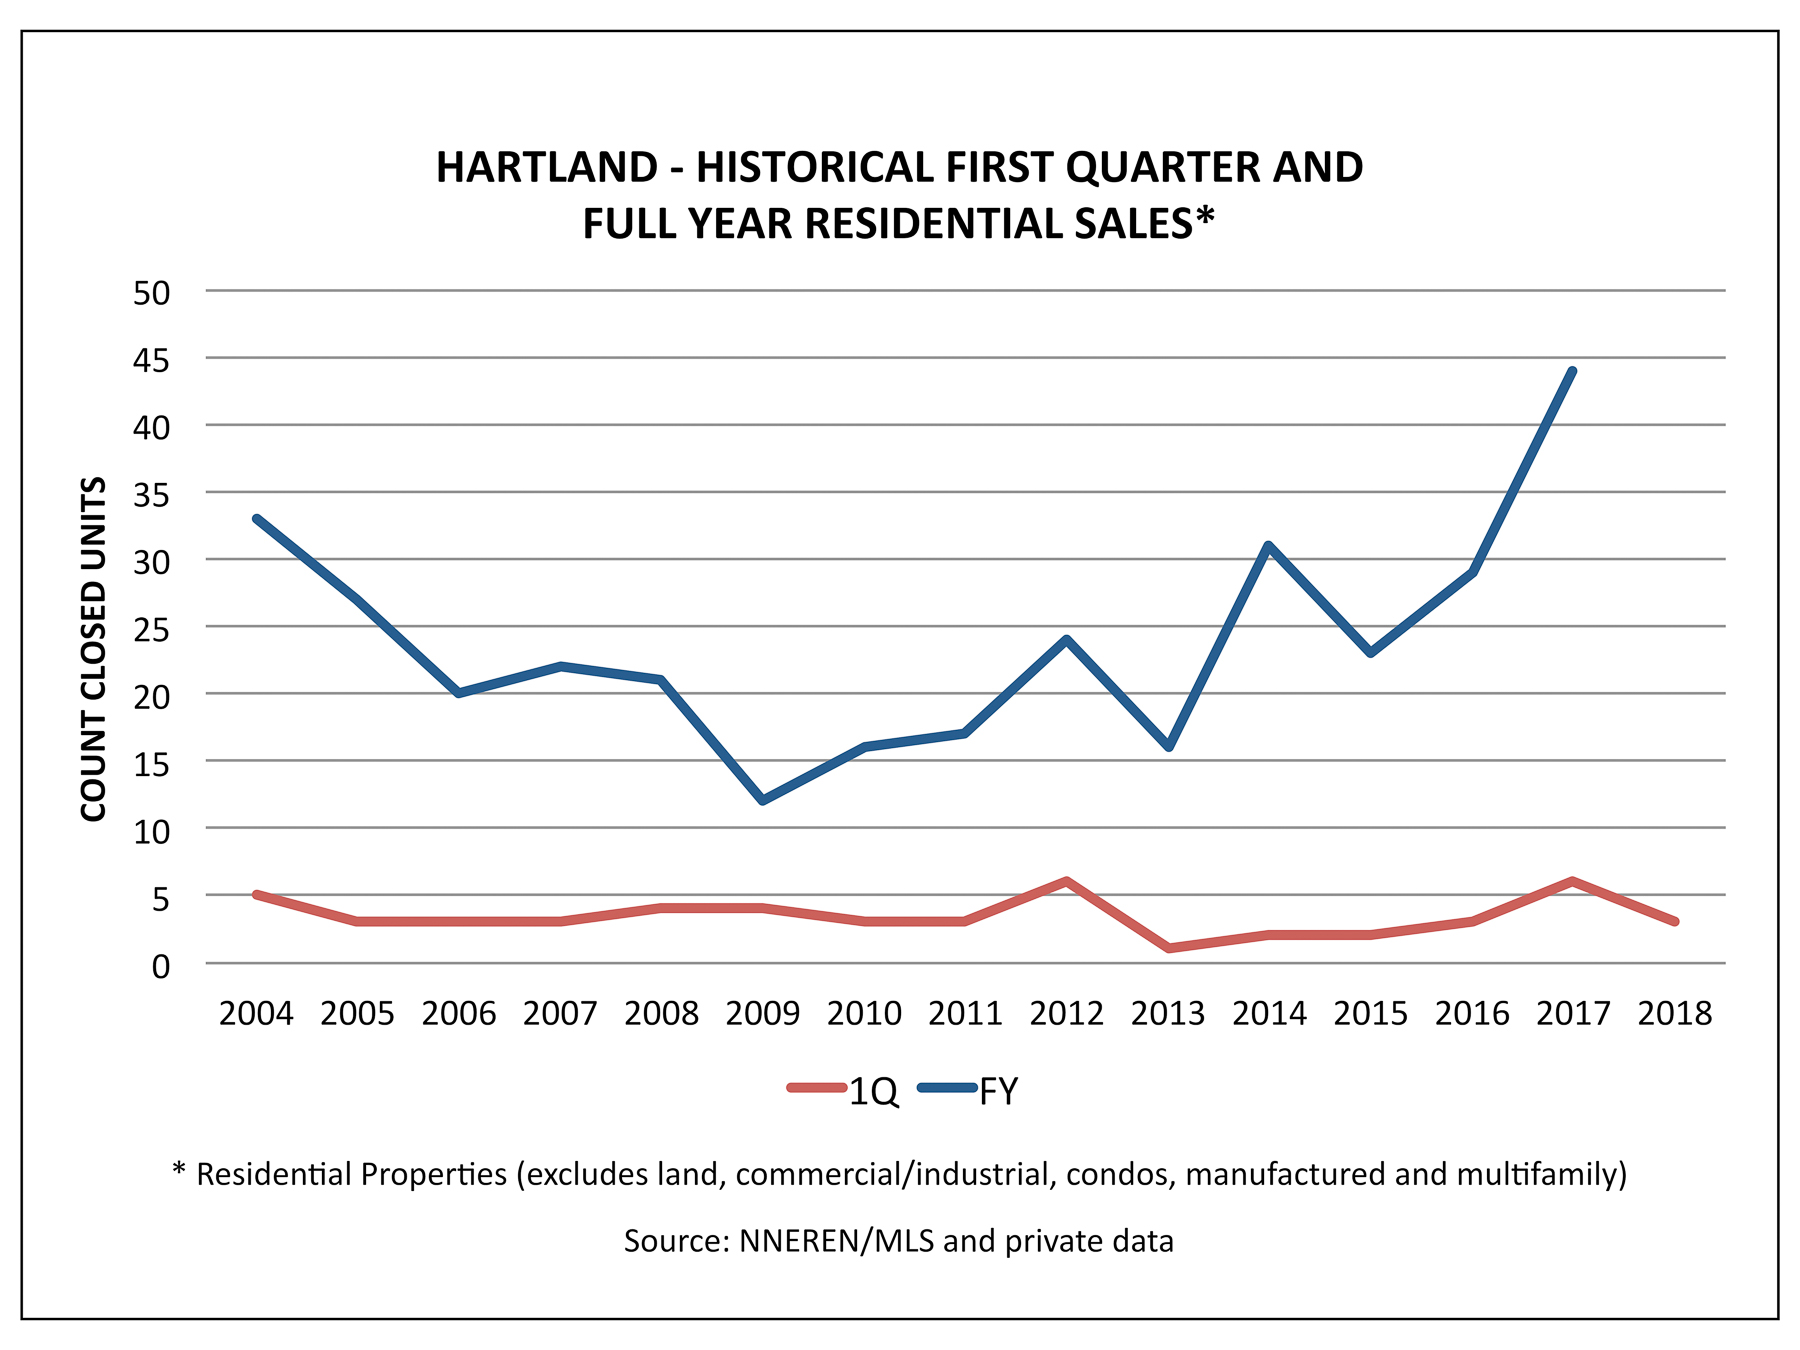 Hartland VT Real Estate - Historical 1Q and FY Home Sales